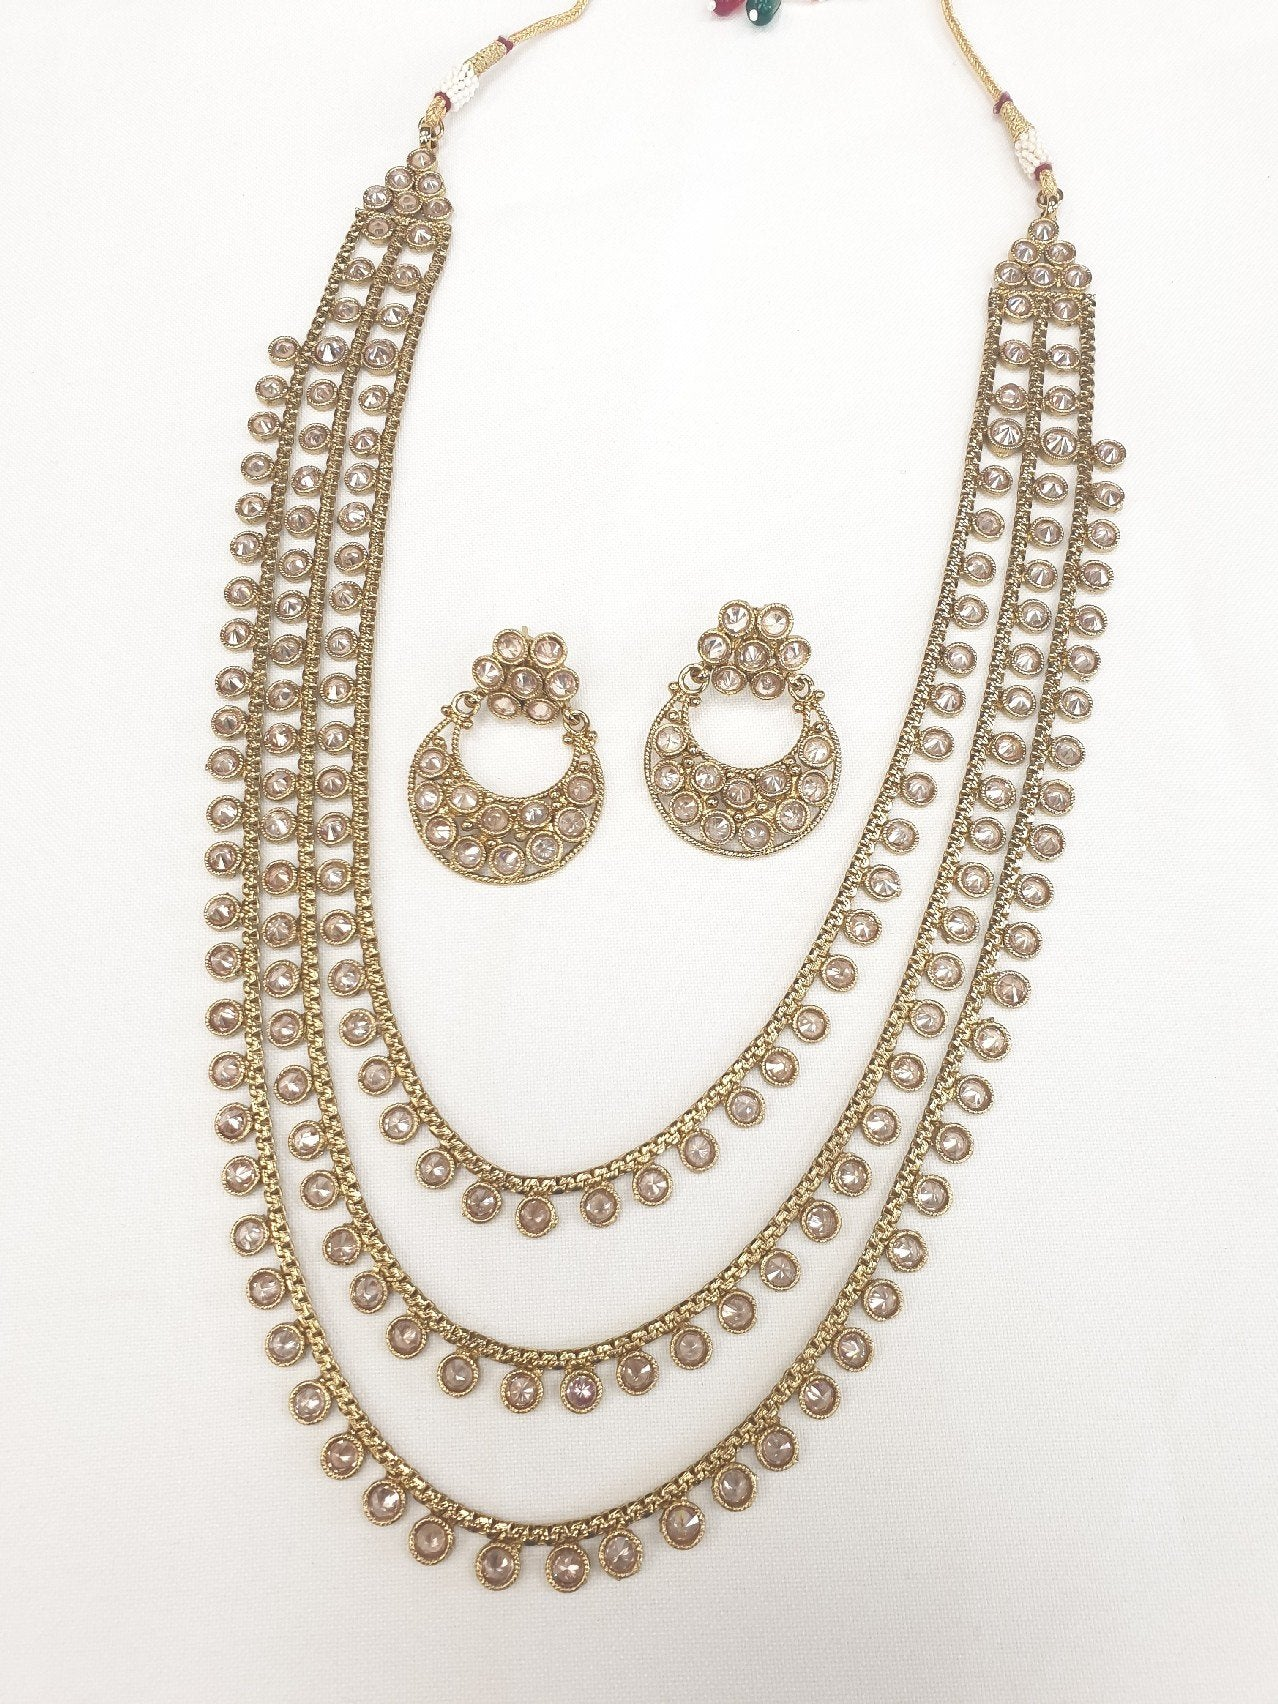 Reverse stone necklace & Earrings set - Bollywood - Weddings - KAJ654 KJ0919 - Prachy Creations